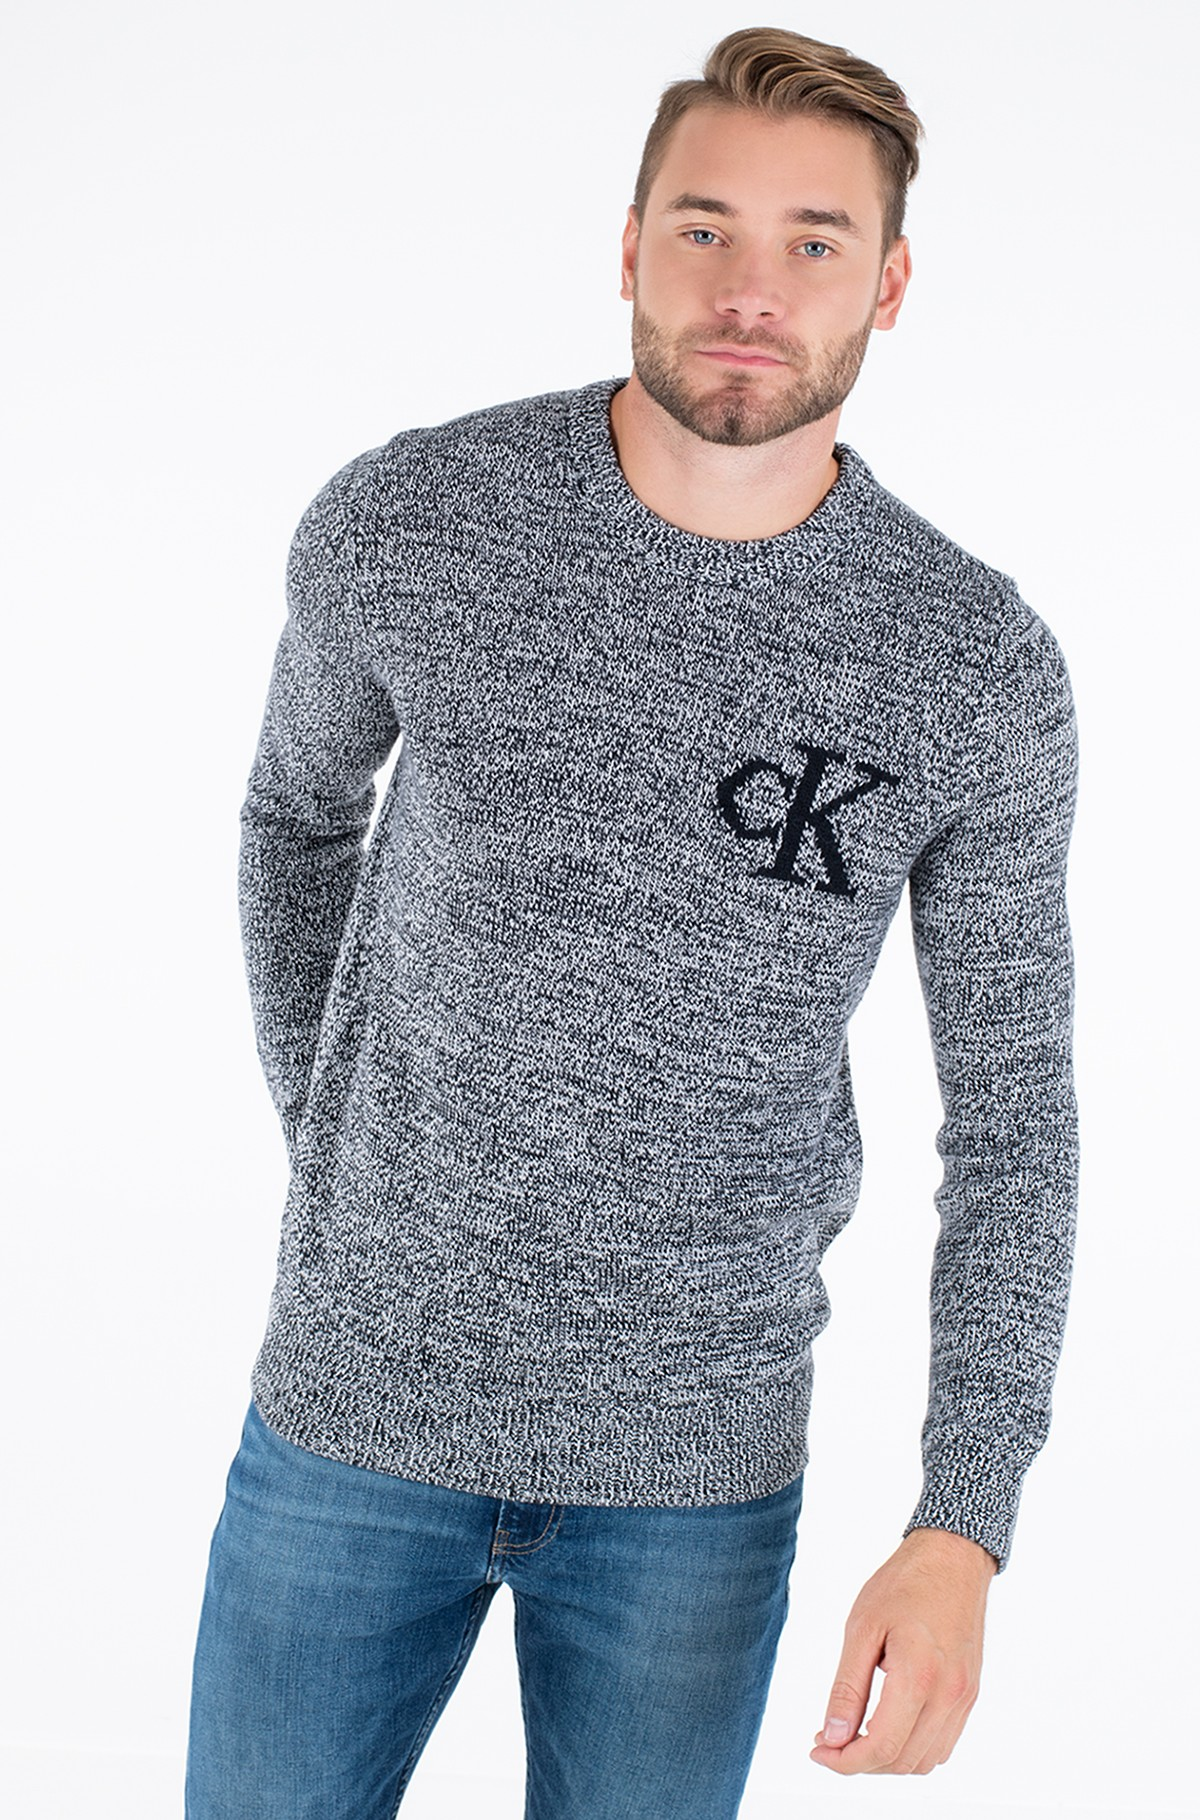 Kampsun TWISTED YARN CK LOGO SWEATER-full-1